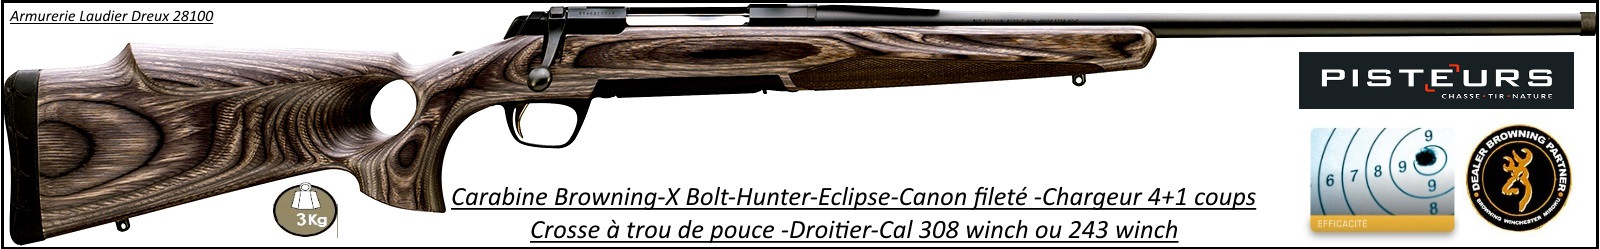 Browning-X-BOLT-Cal 308 winch-Hunter-Eclipse-SF-Threaded-Canon fileté -Promotion-Ref 21333